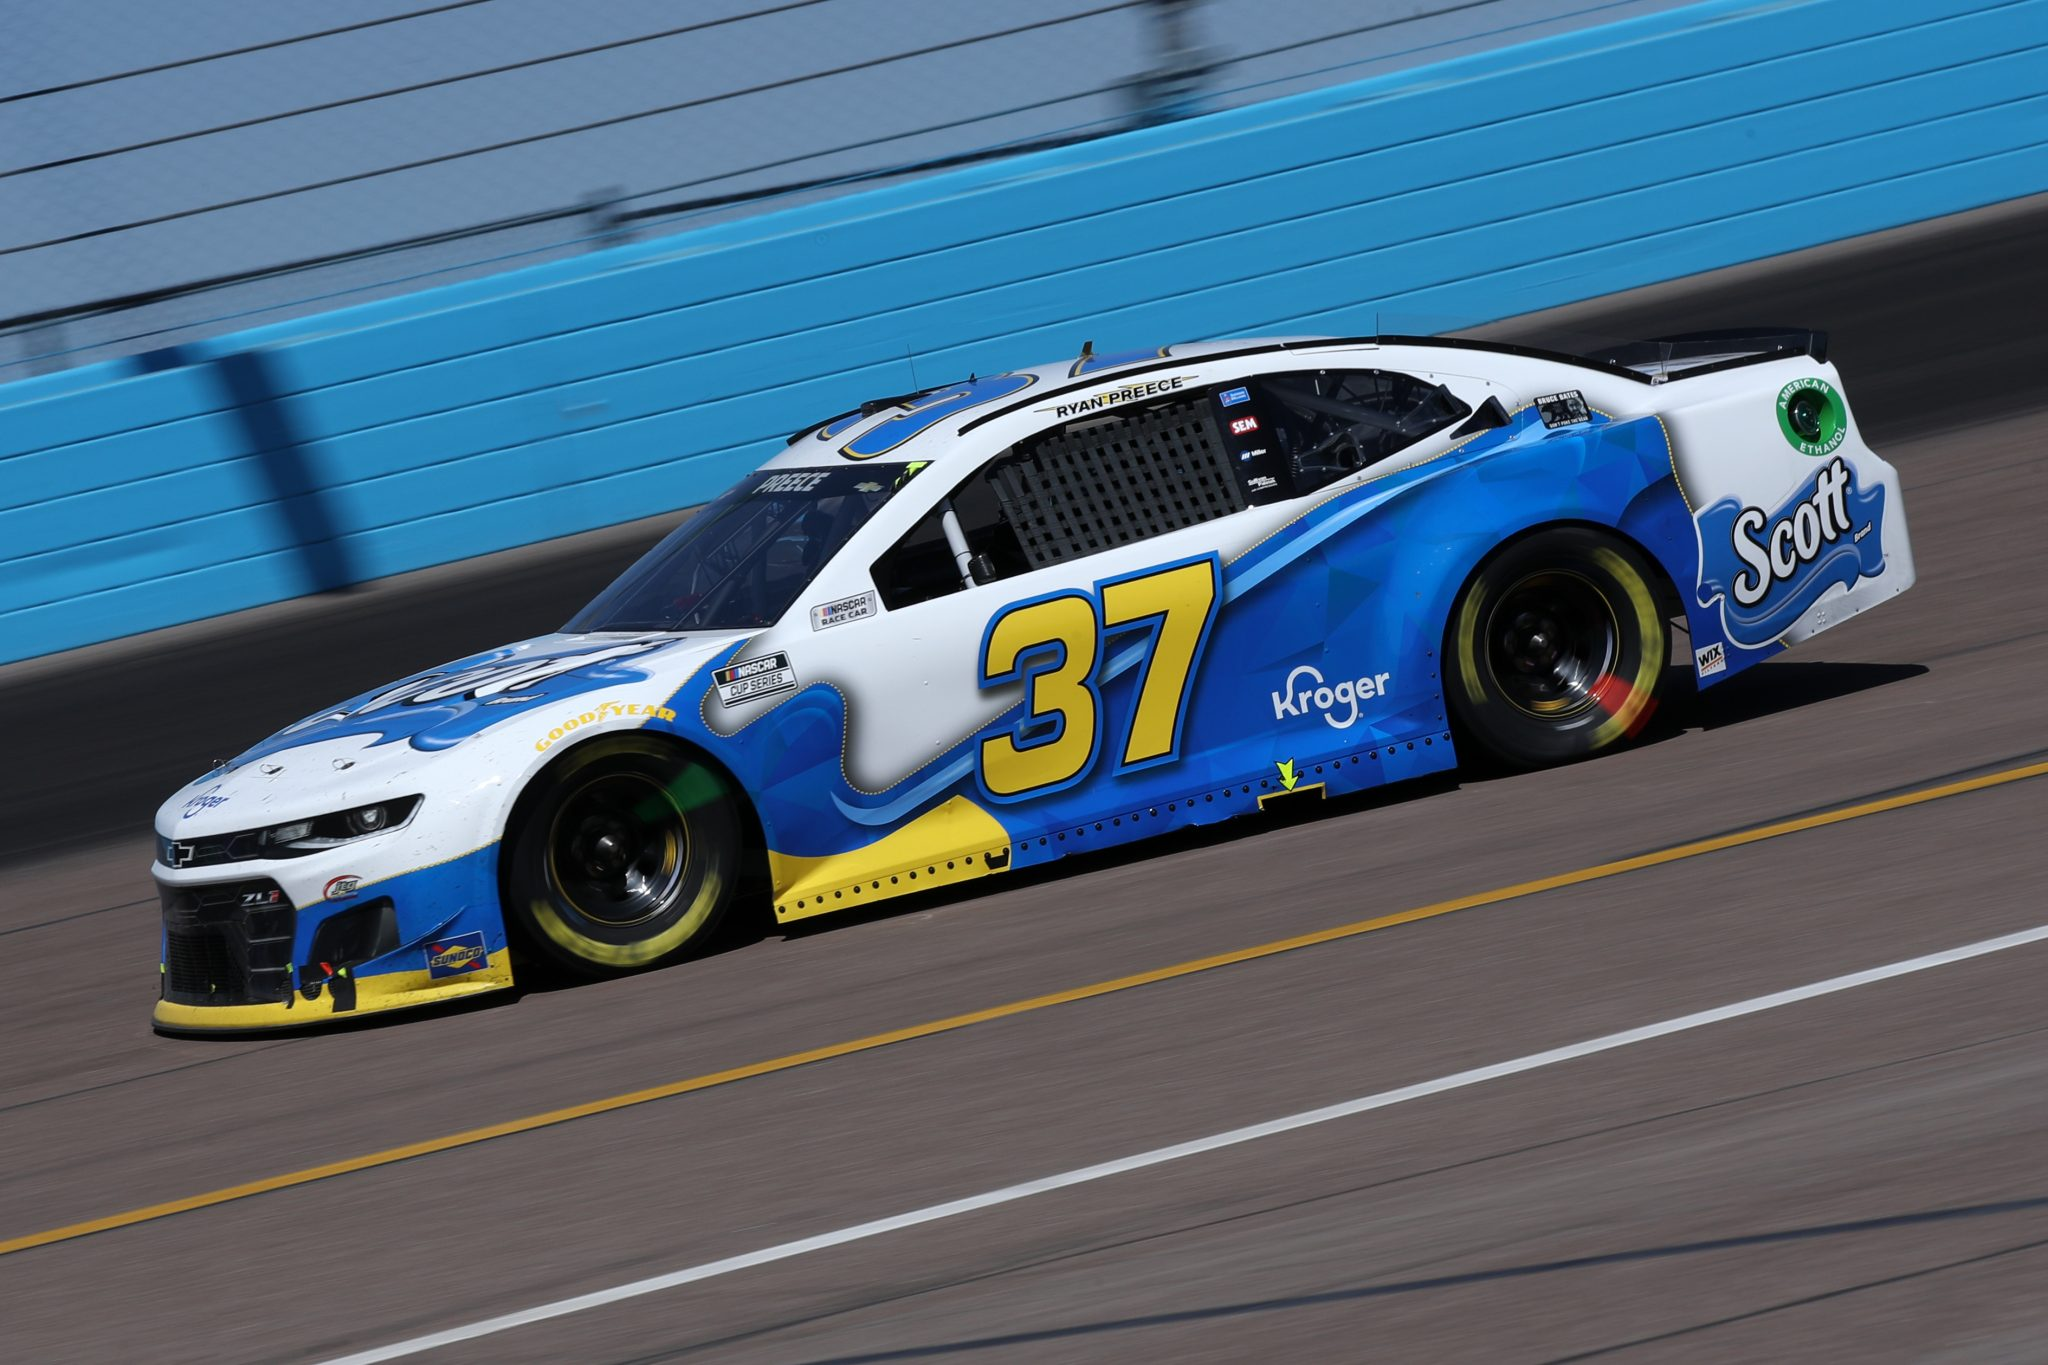 AVONDALE, ARIZONA - MARCH 14: Ryan Preece, driver of the #37 Soctt Brand Chevrolet, drives during the NASCAR Cup Series Instacart 500 at Phoenix Raceway on March 14, 2021 in Avondale, Arizona. (Photo by Sean Gardner/Getty Images)   Getty Images